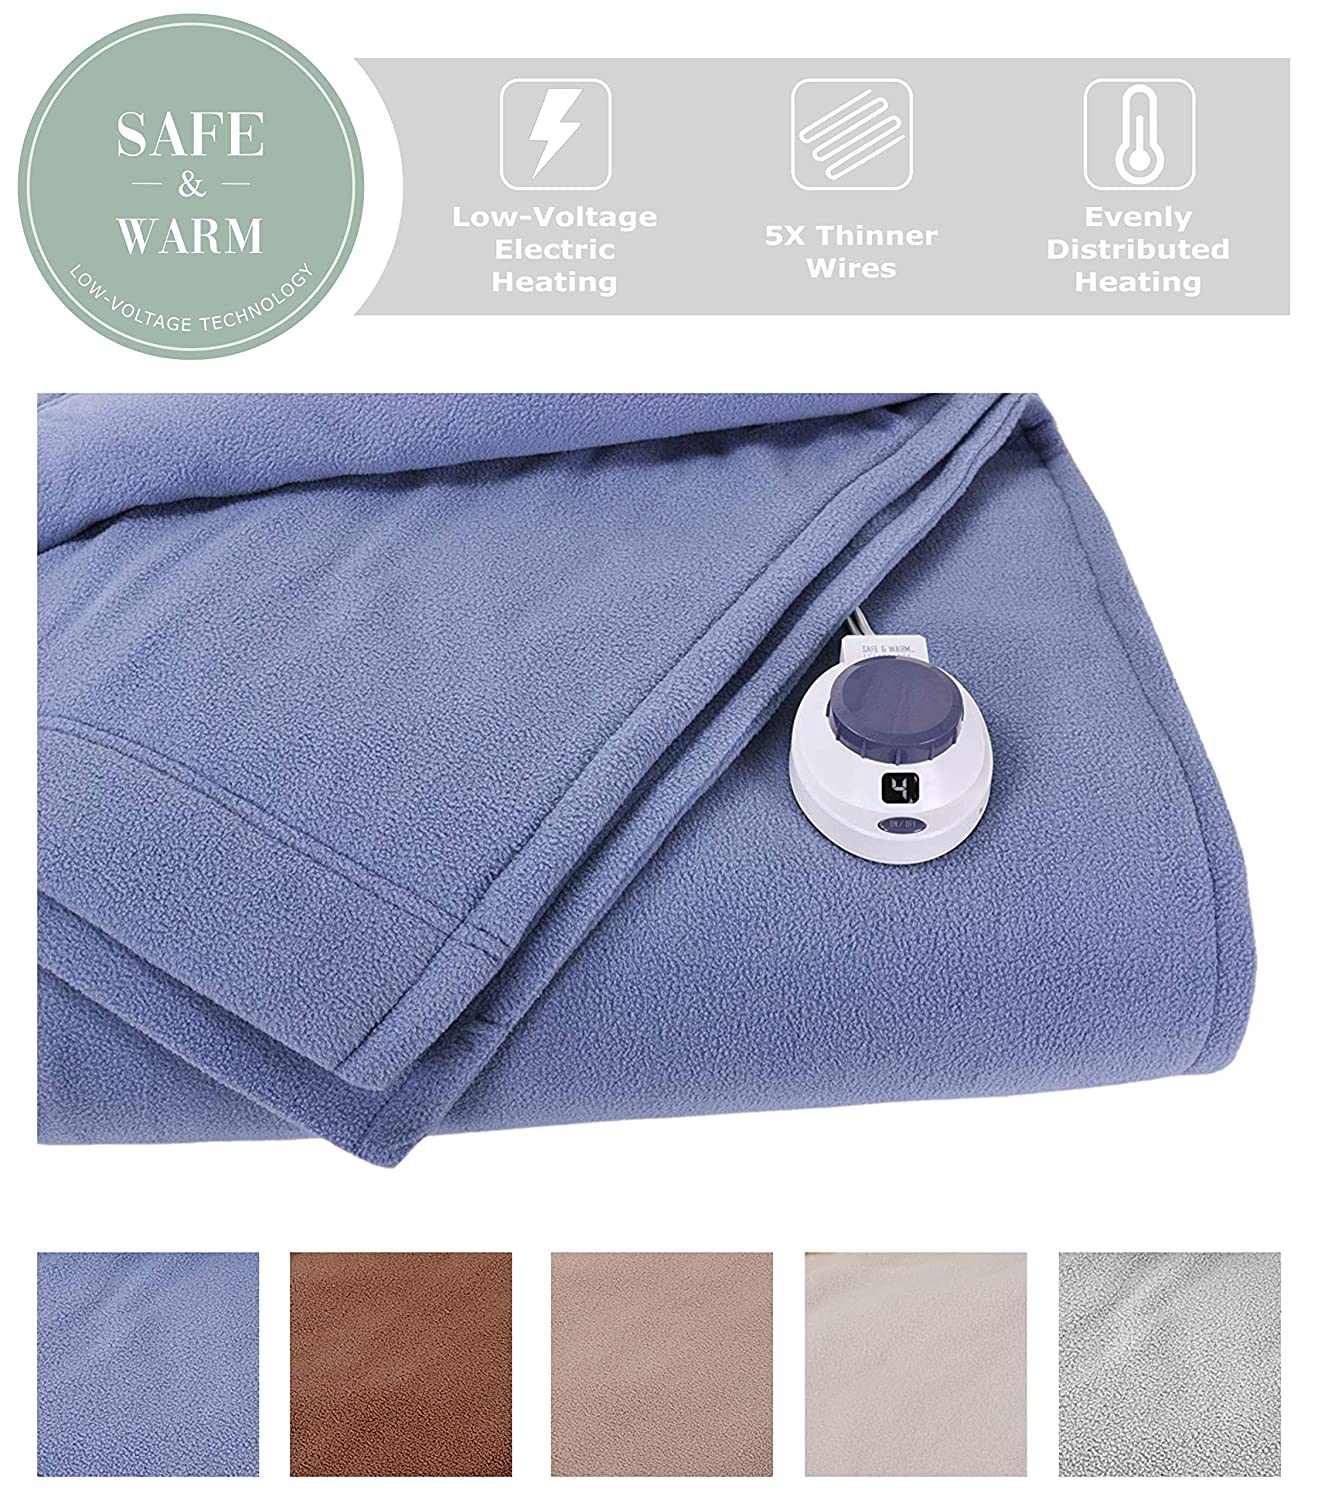 Slate bluee Full SoftHeat by Perfect Fit   Luxury Fleece Electric Heated Blanket with Safe & Warm Low-Voltage Technology (King, Beige)